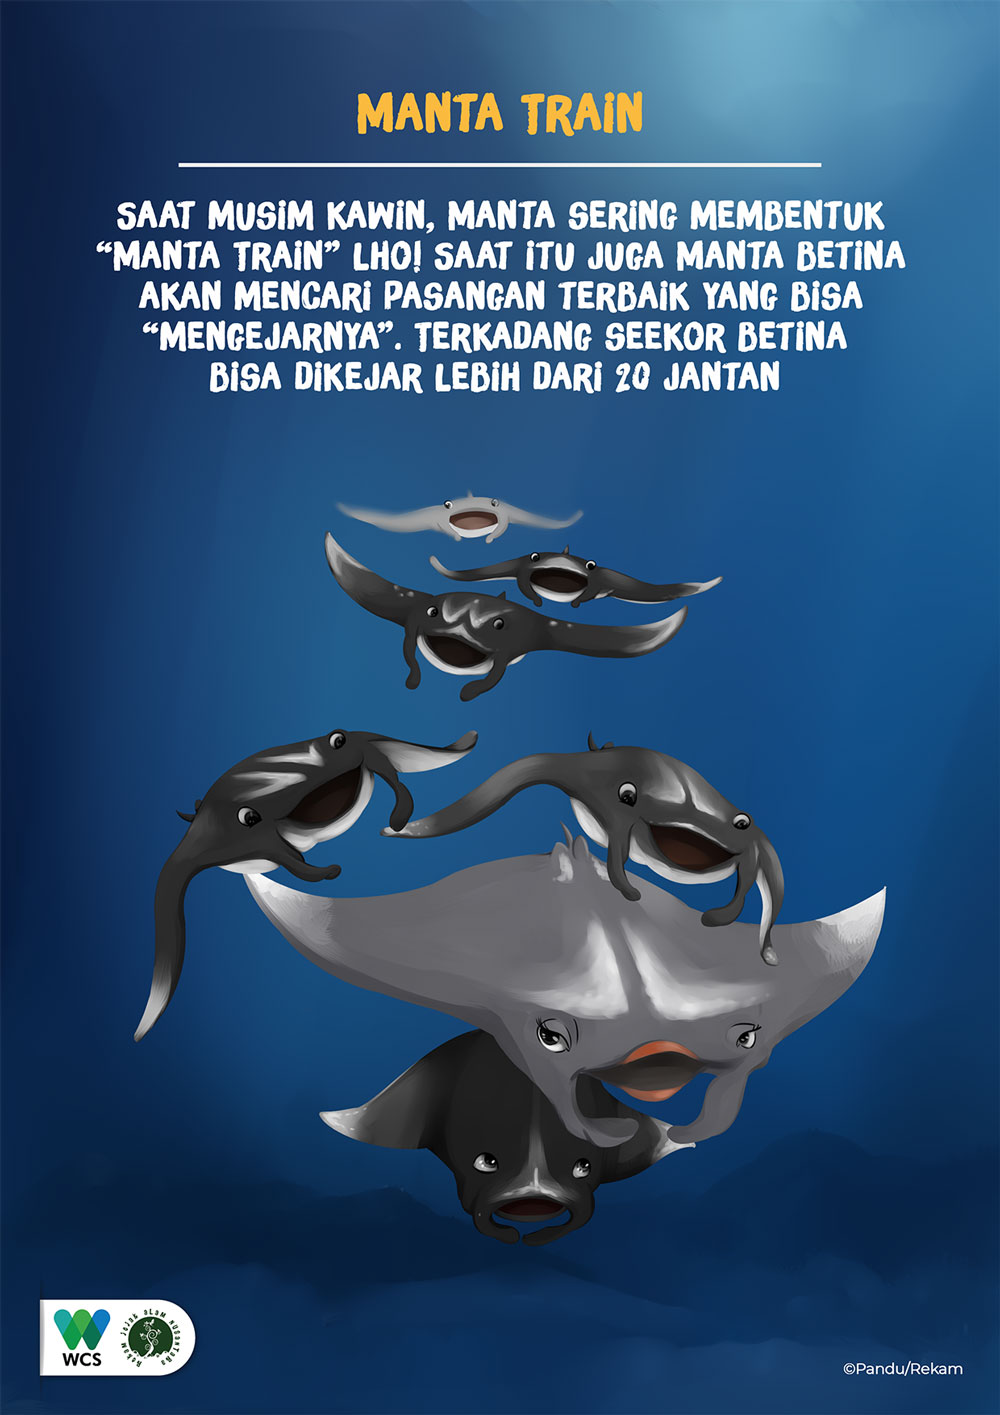 Manta fun fact